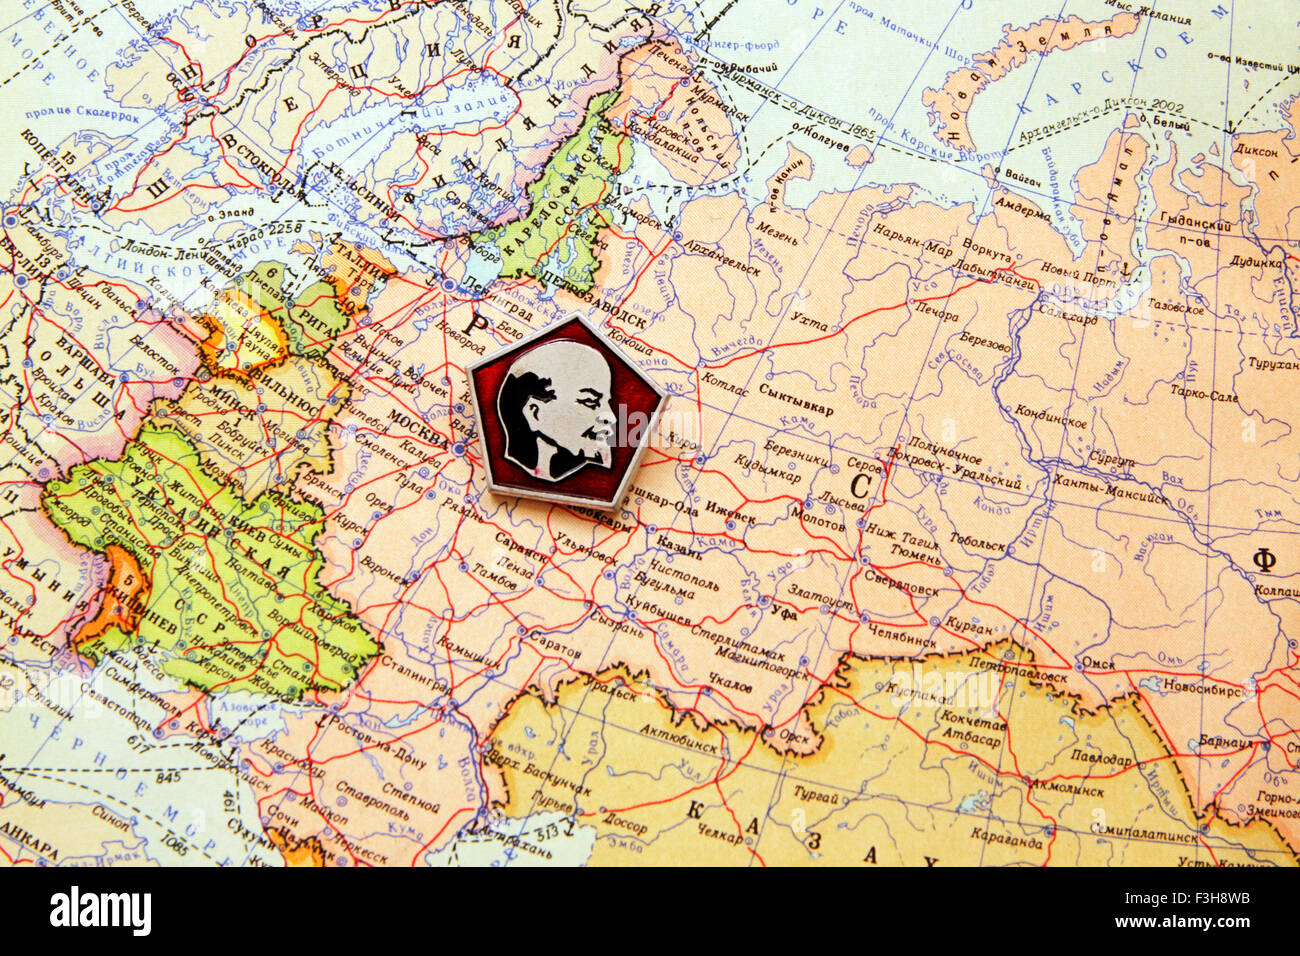 Lenin on the political map USSR 1953 - Stock Image